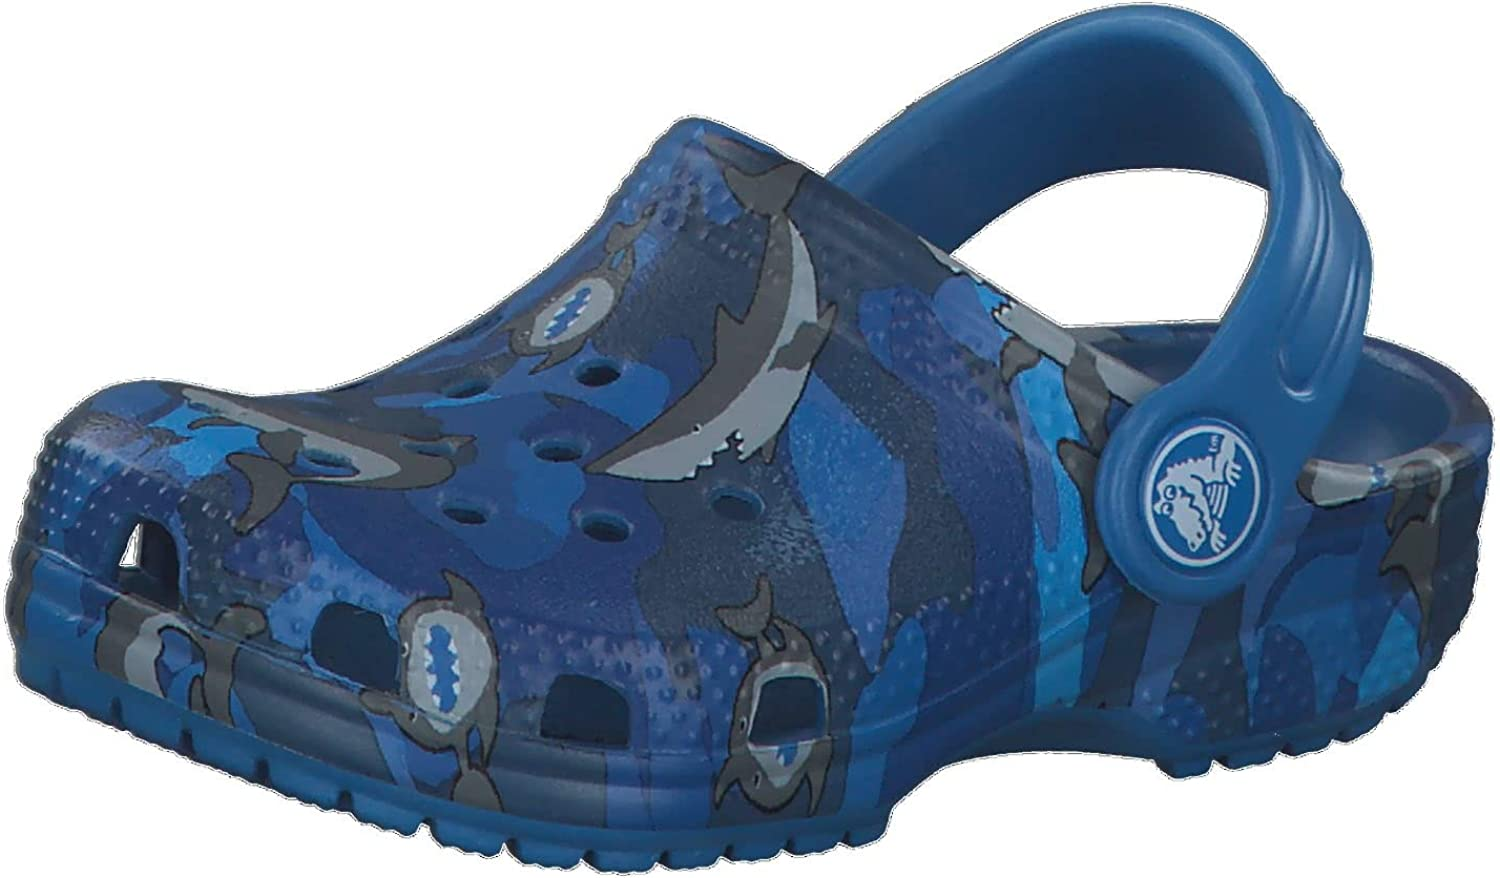 Crocs Kids' Classic Shark Clog | Slip On Shark Shoes for Boys and Girls